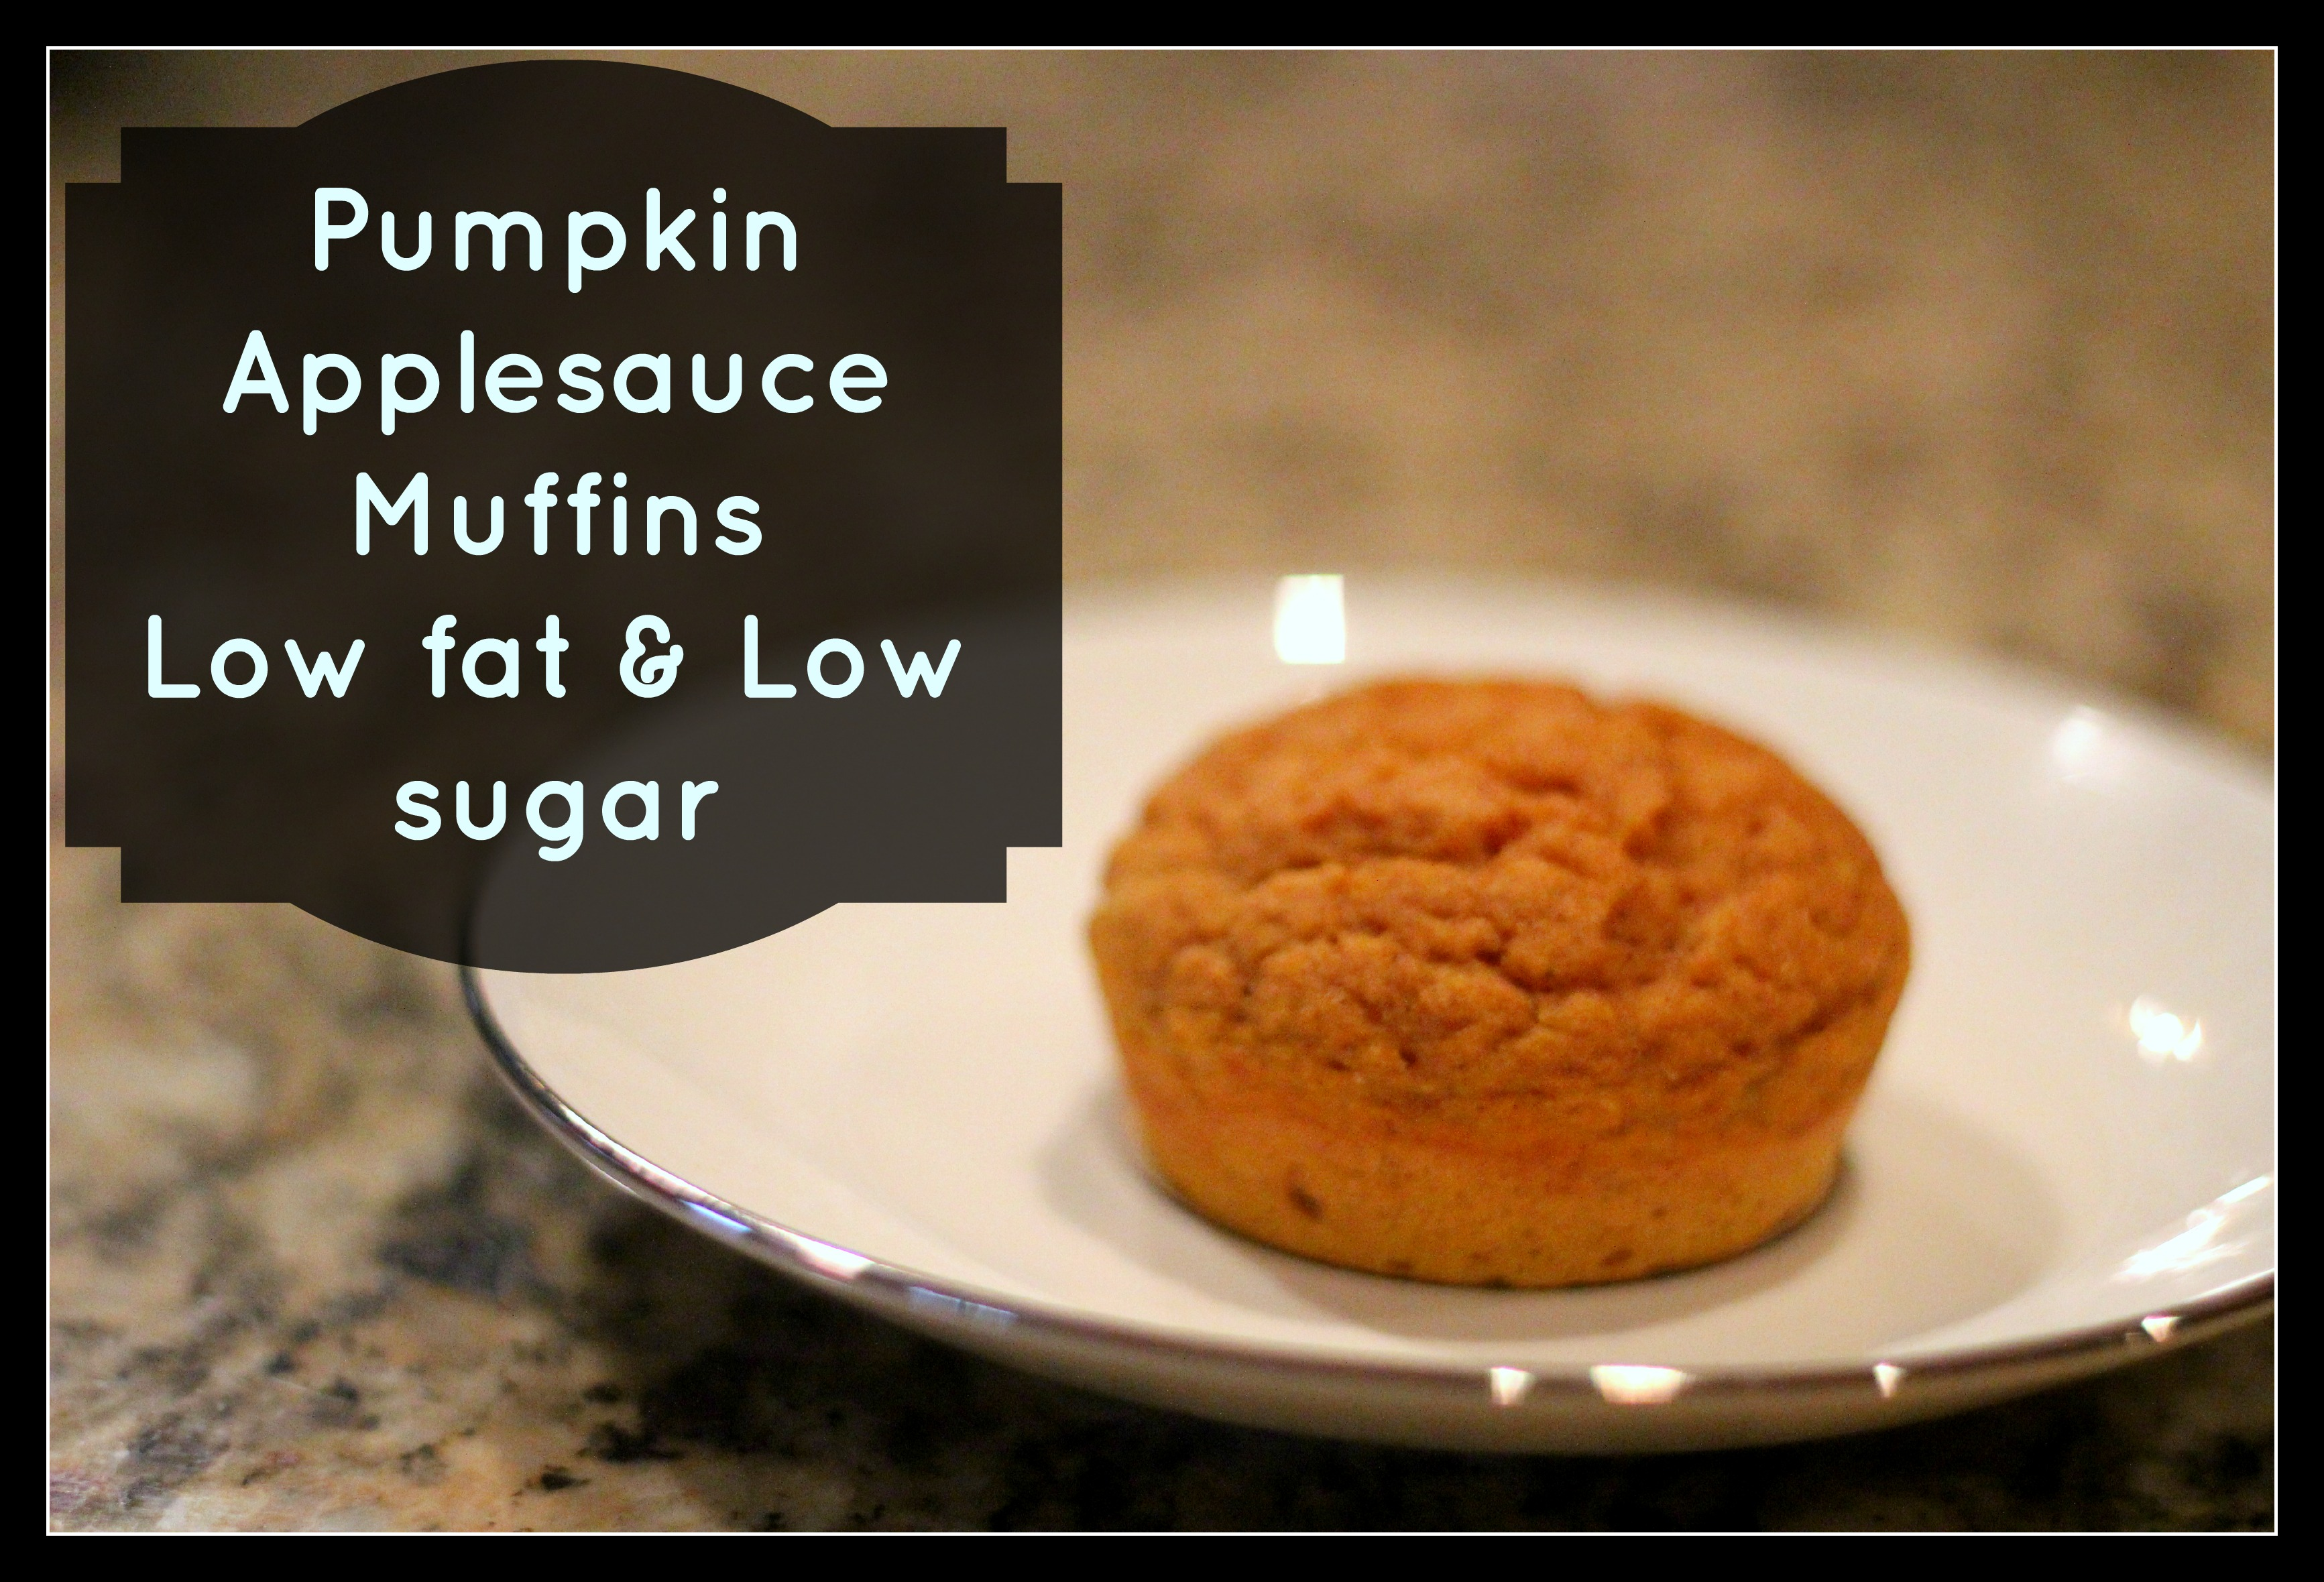 pumpkin applesauce muffin